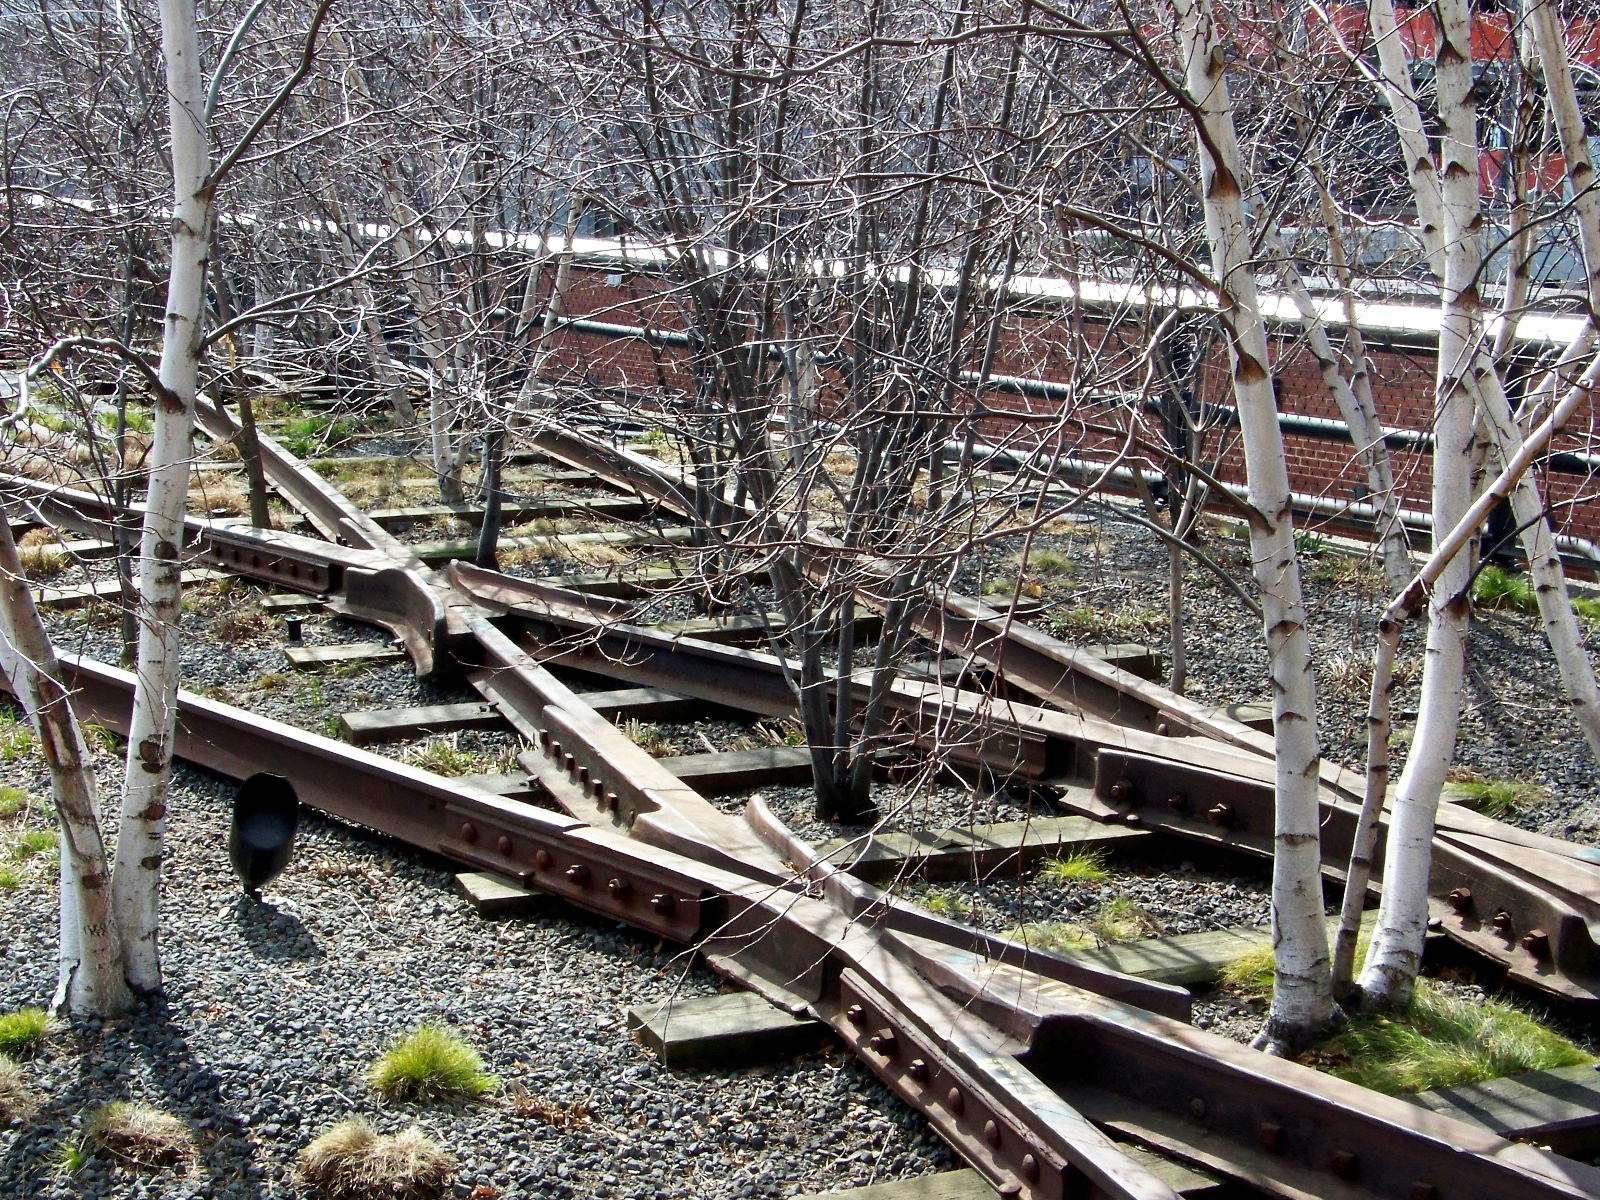 Trees growing through the rails.